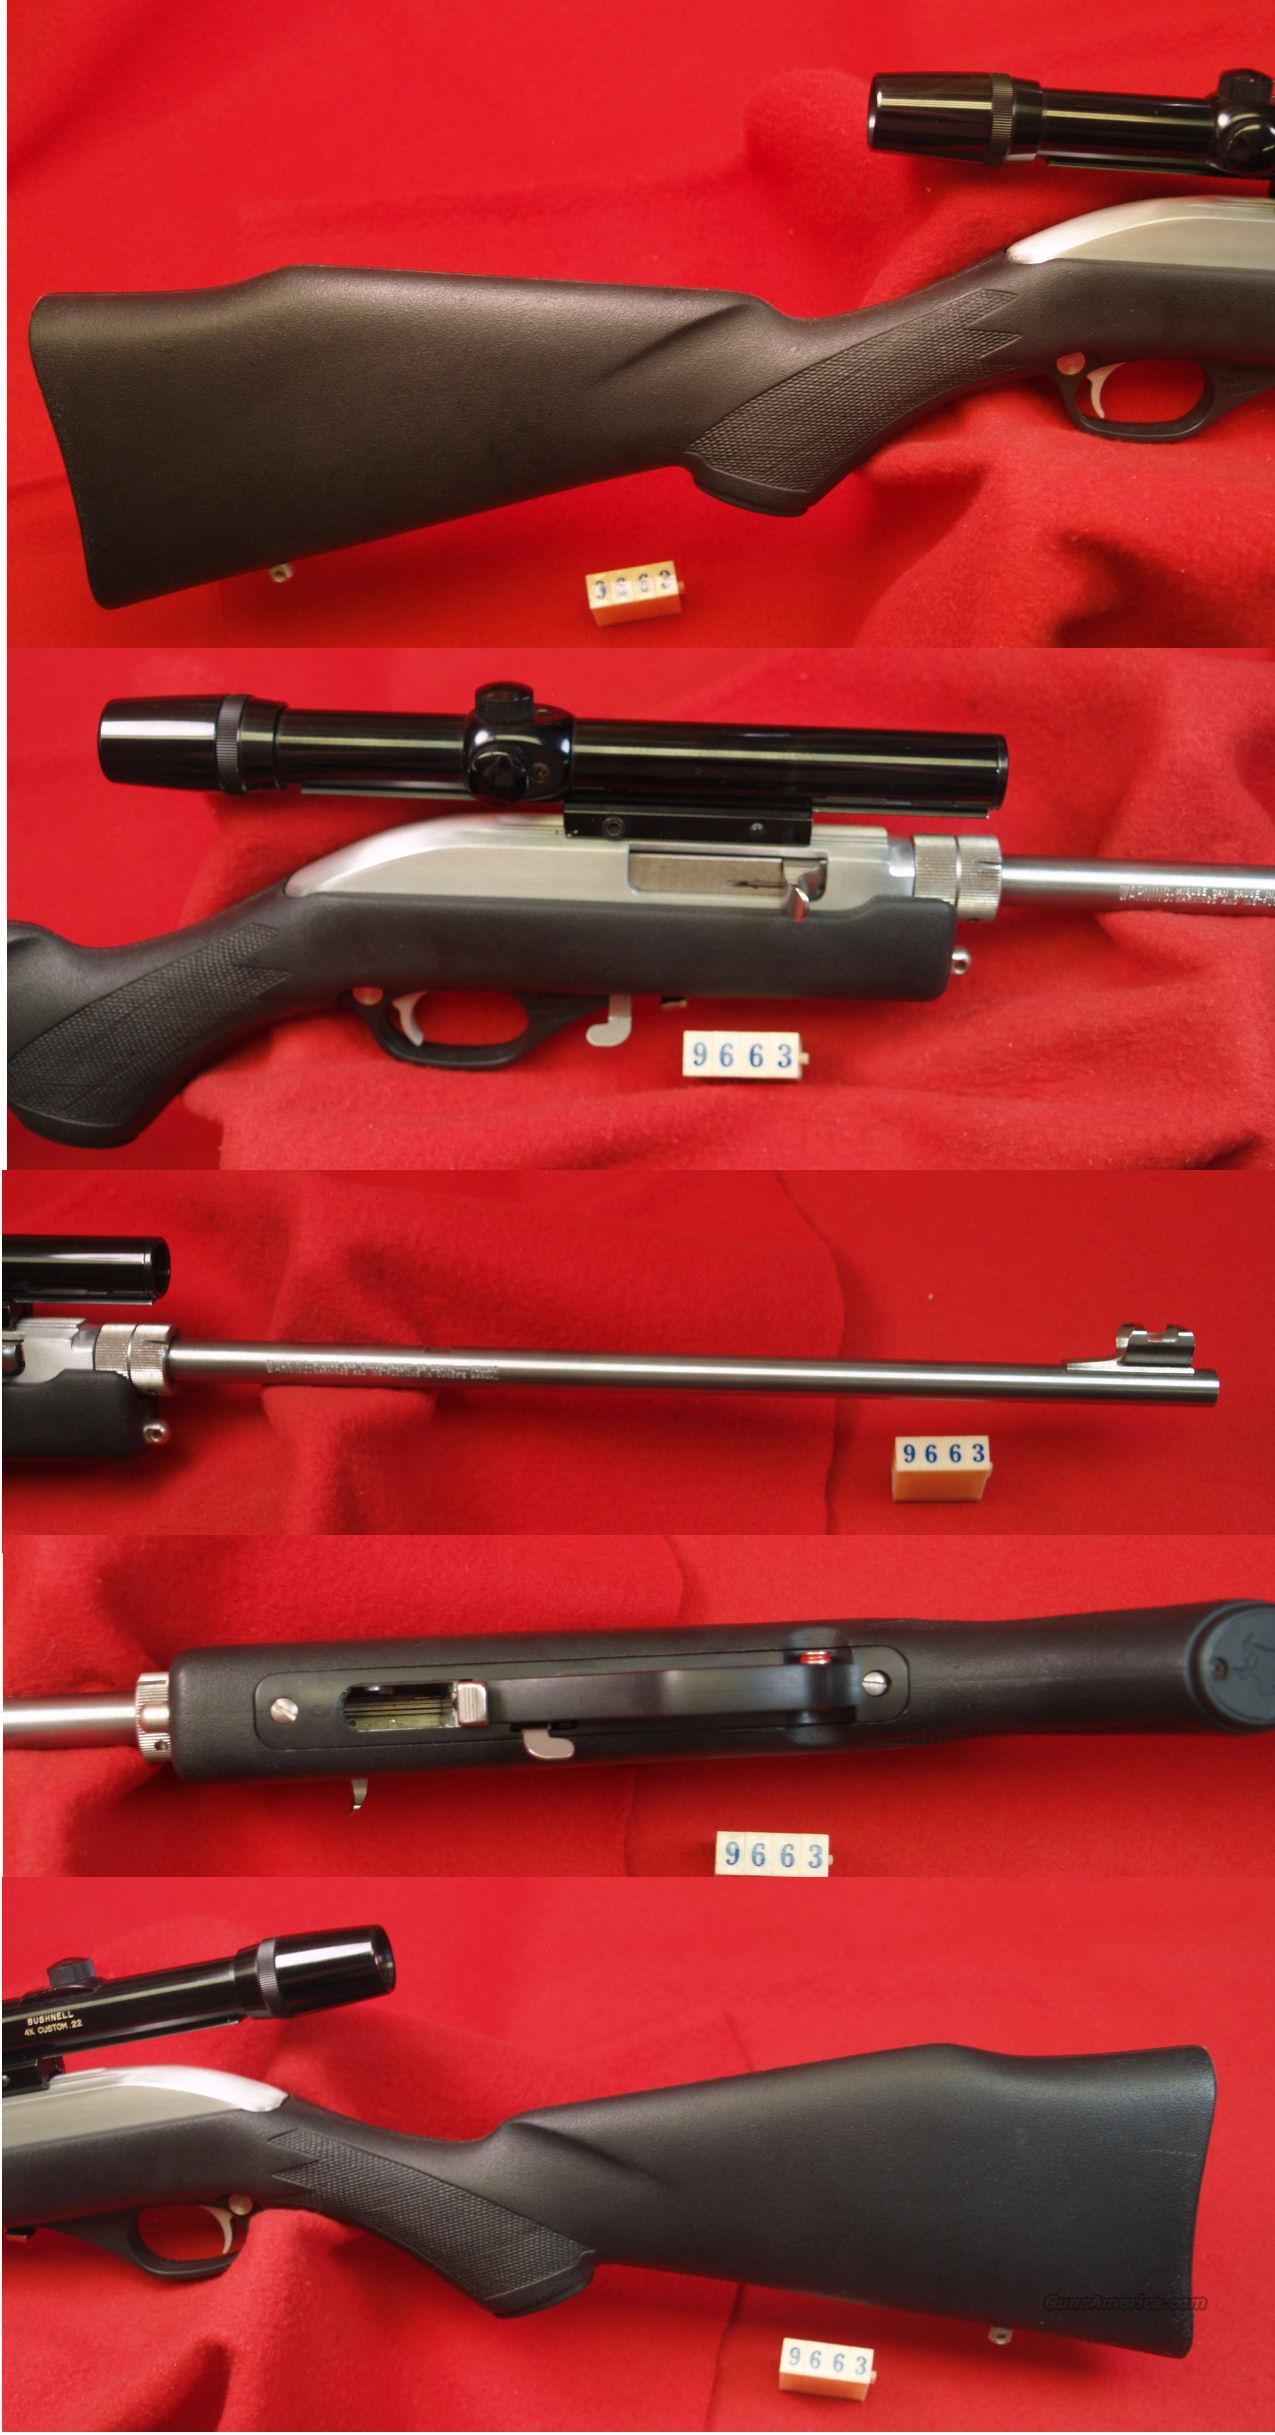 MARLIN PAPOOSE  22LR  Guns > Rifles > Marlin Rifles > Modern > Semi-auto